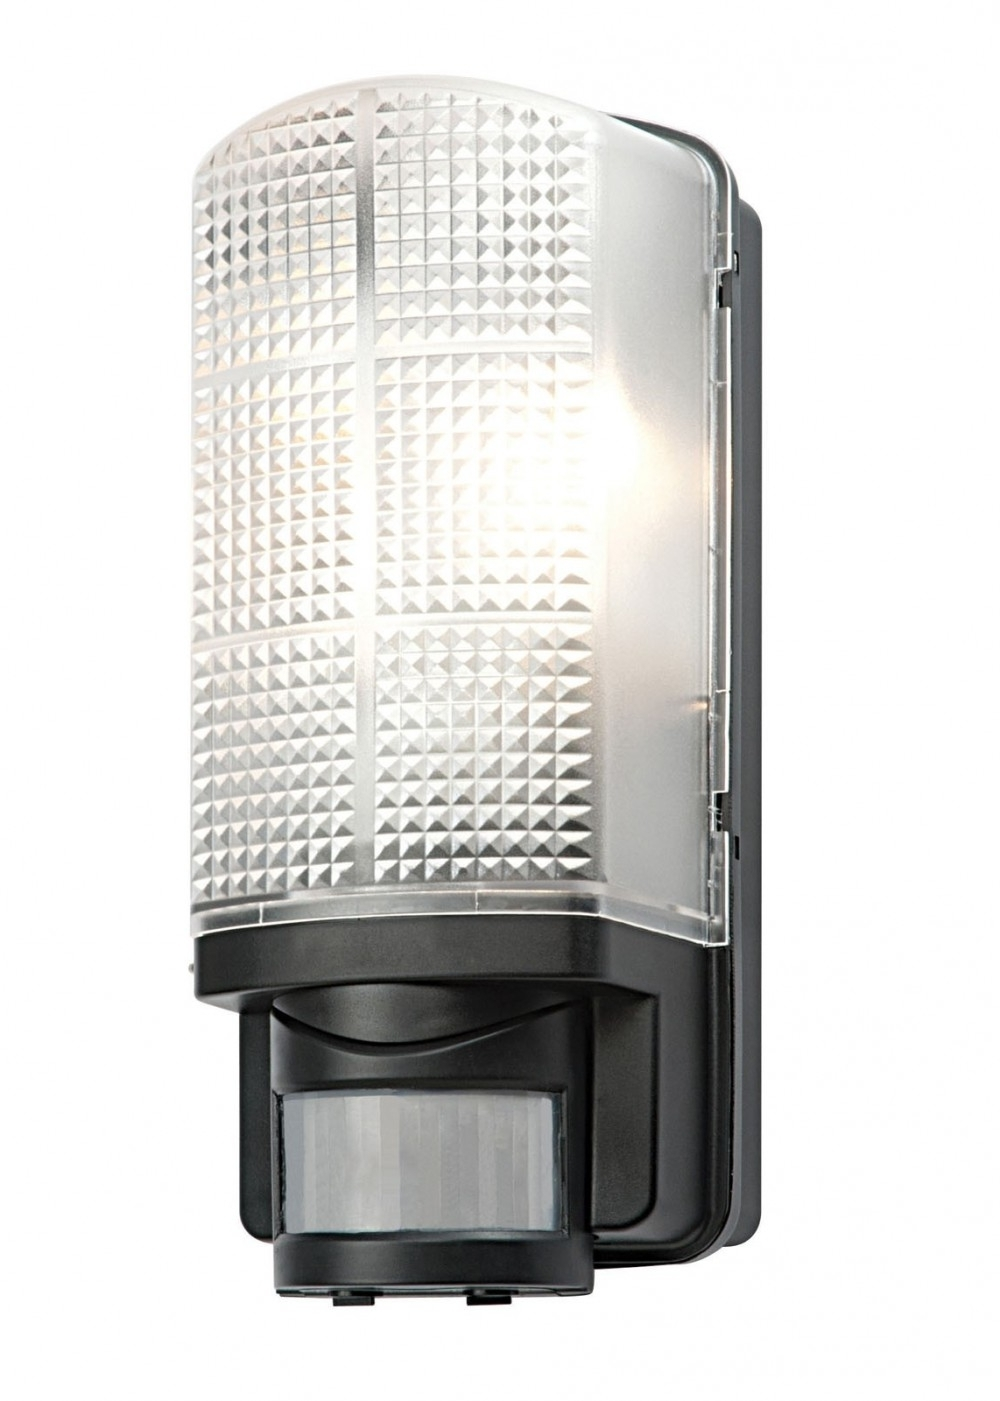 Newest Best Outdoor Wall Led Lights With Regard To Safety With Motion Sensor Outdoor Wall Light (View 6 of 20)